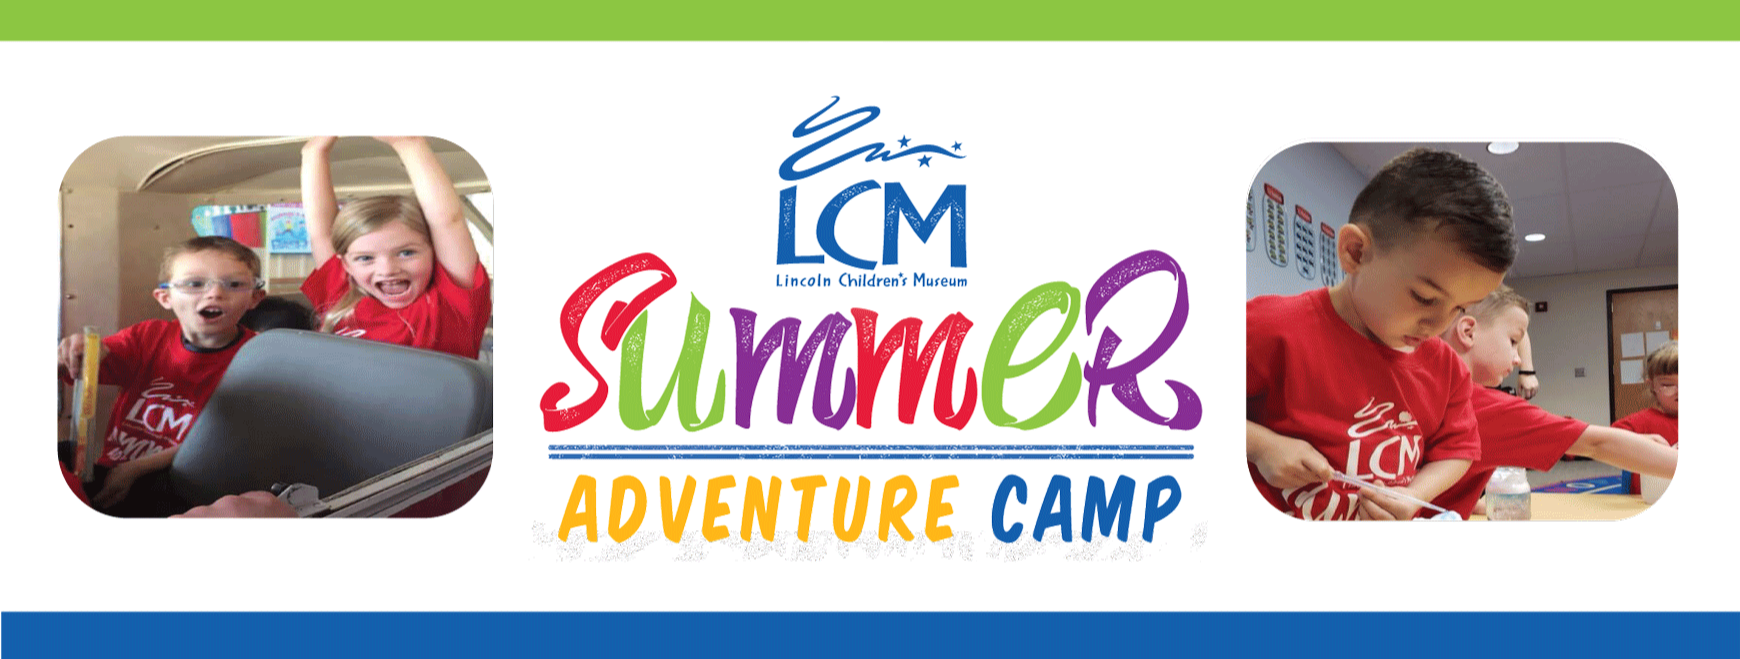 Register Them For Lincoln Childrens Museum Summer Camps And They Are Guaranteed To Make Out Of School Days Fun Full Learning